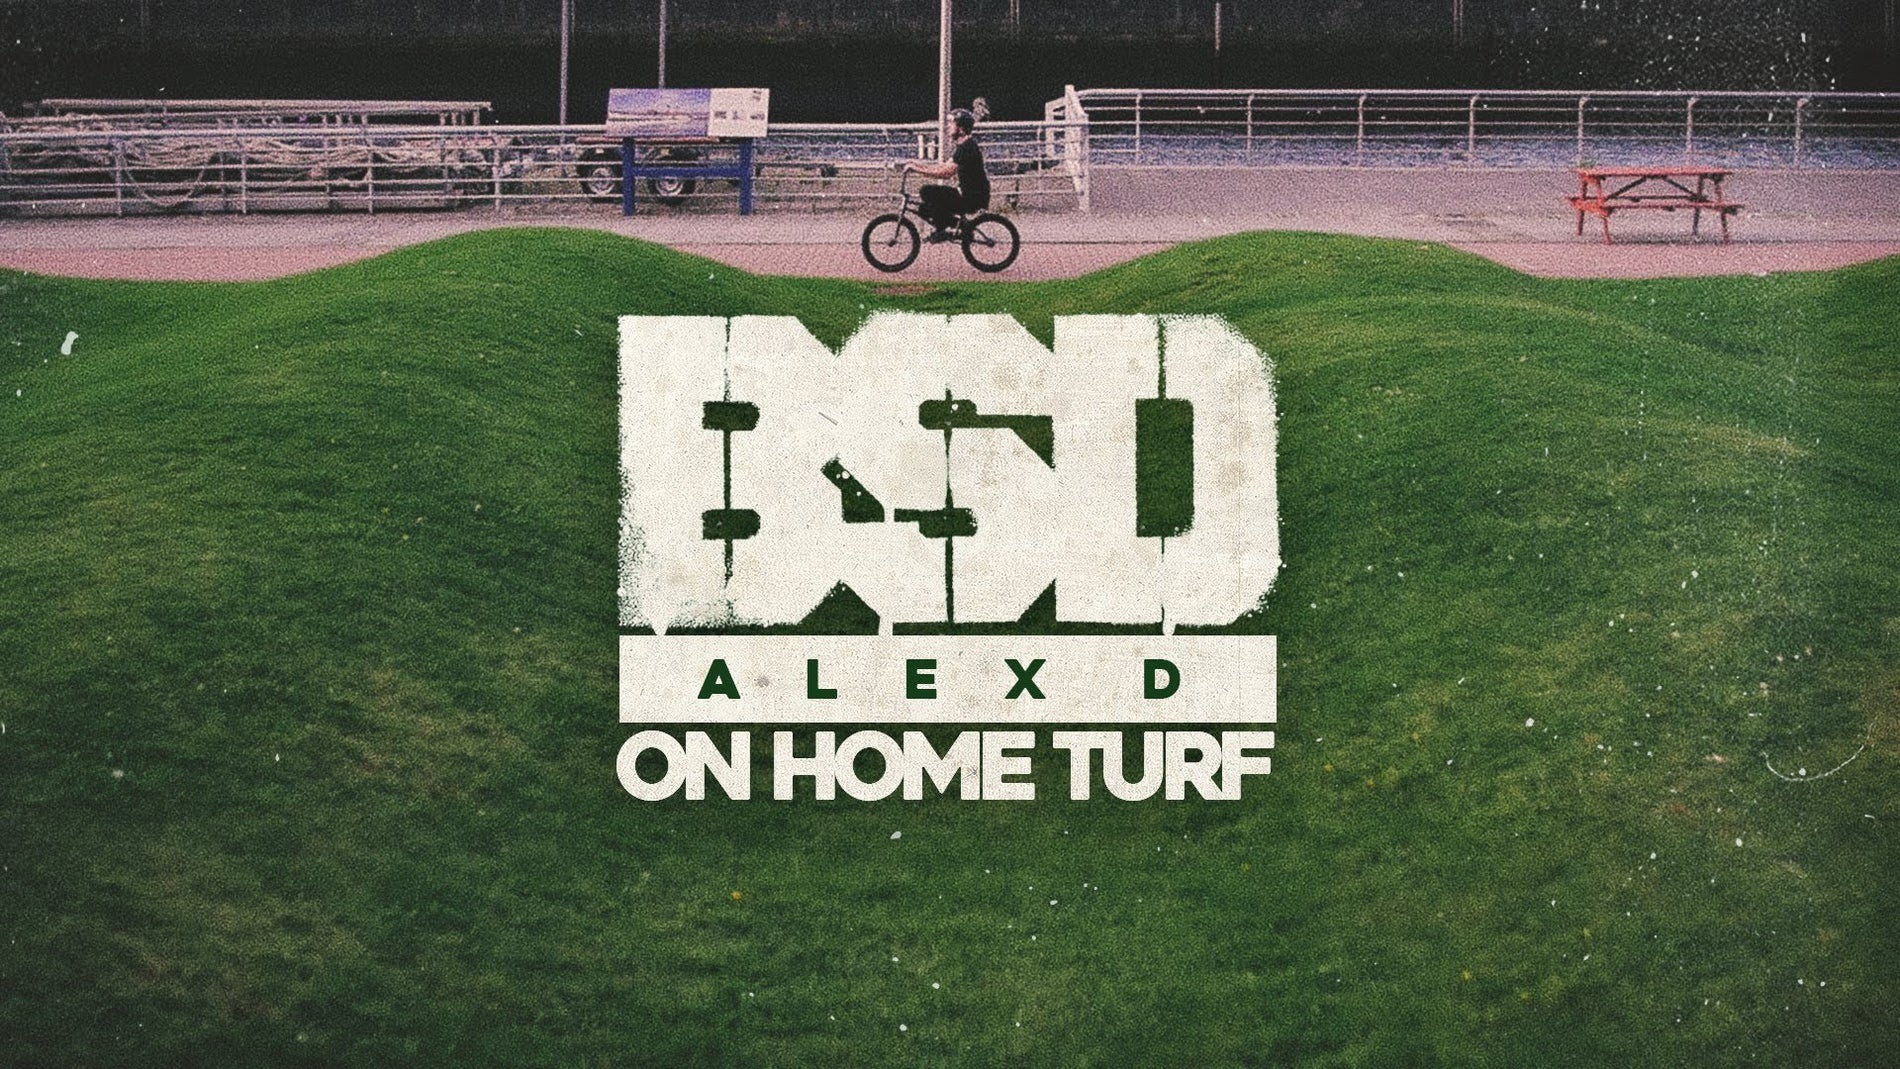 Alex D 'On Home Turf'